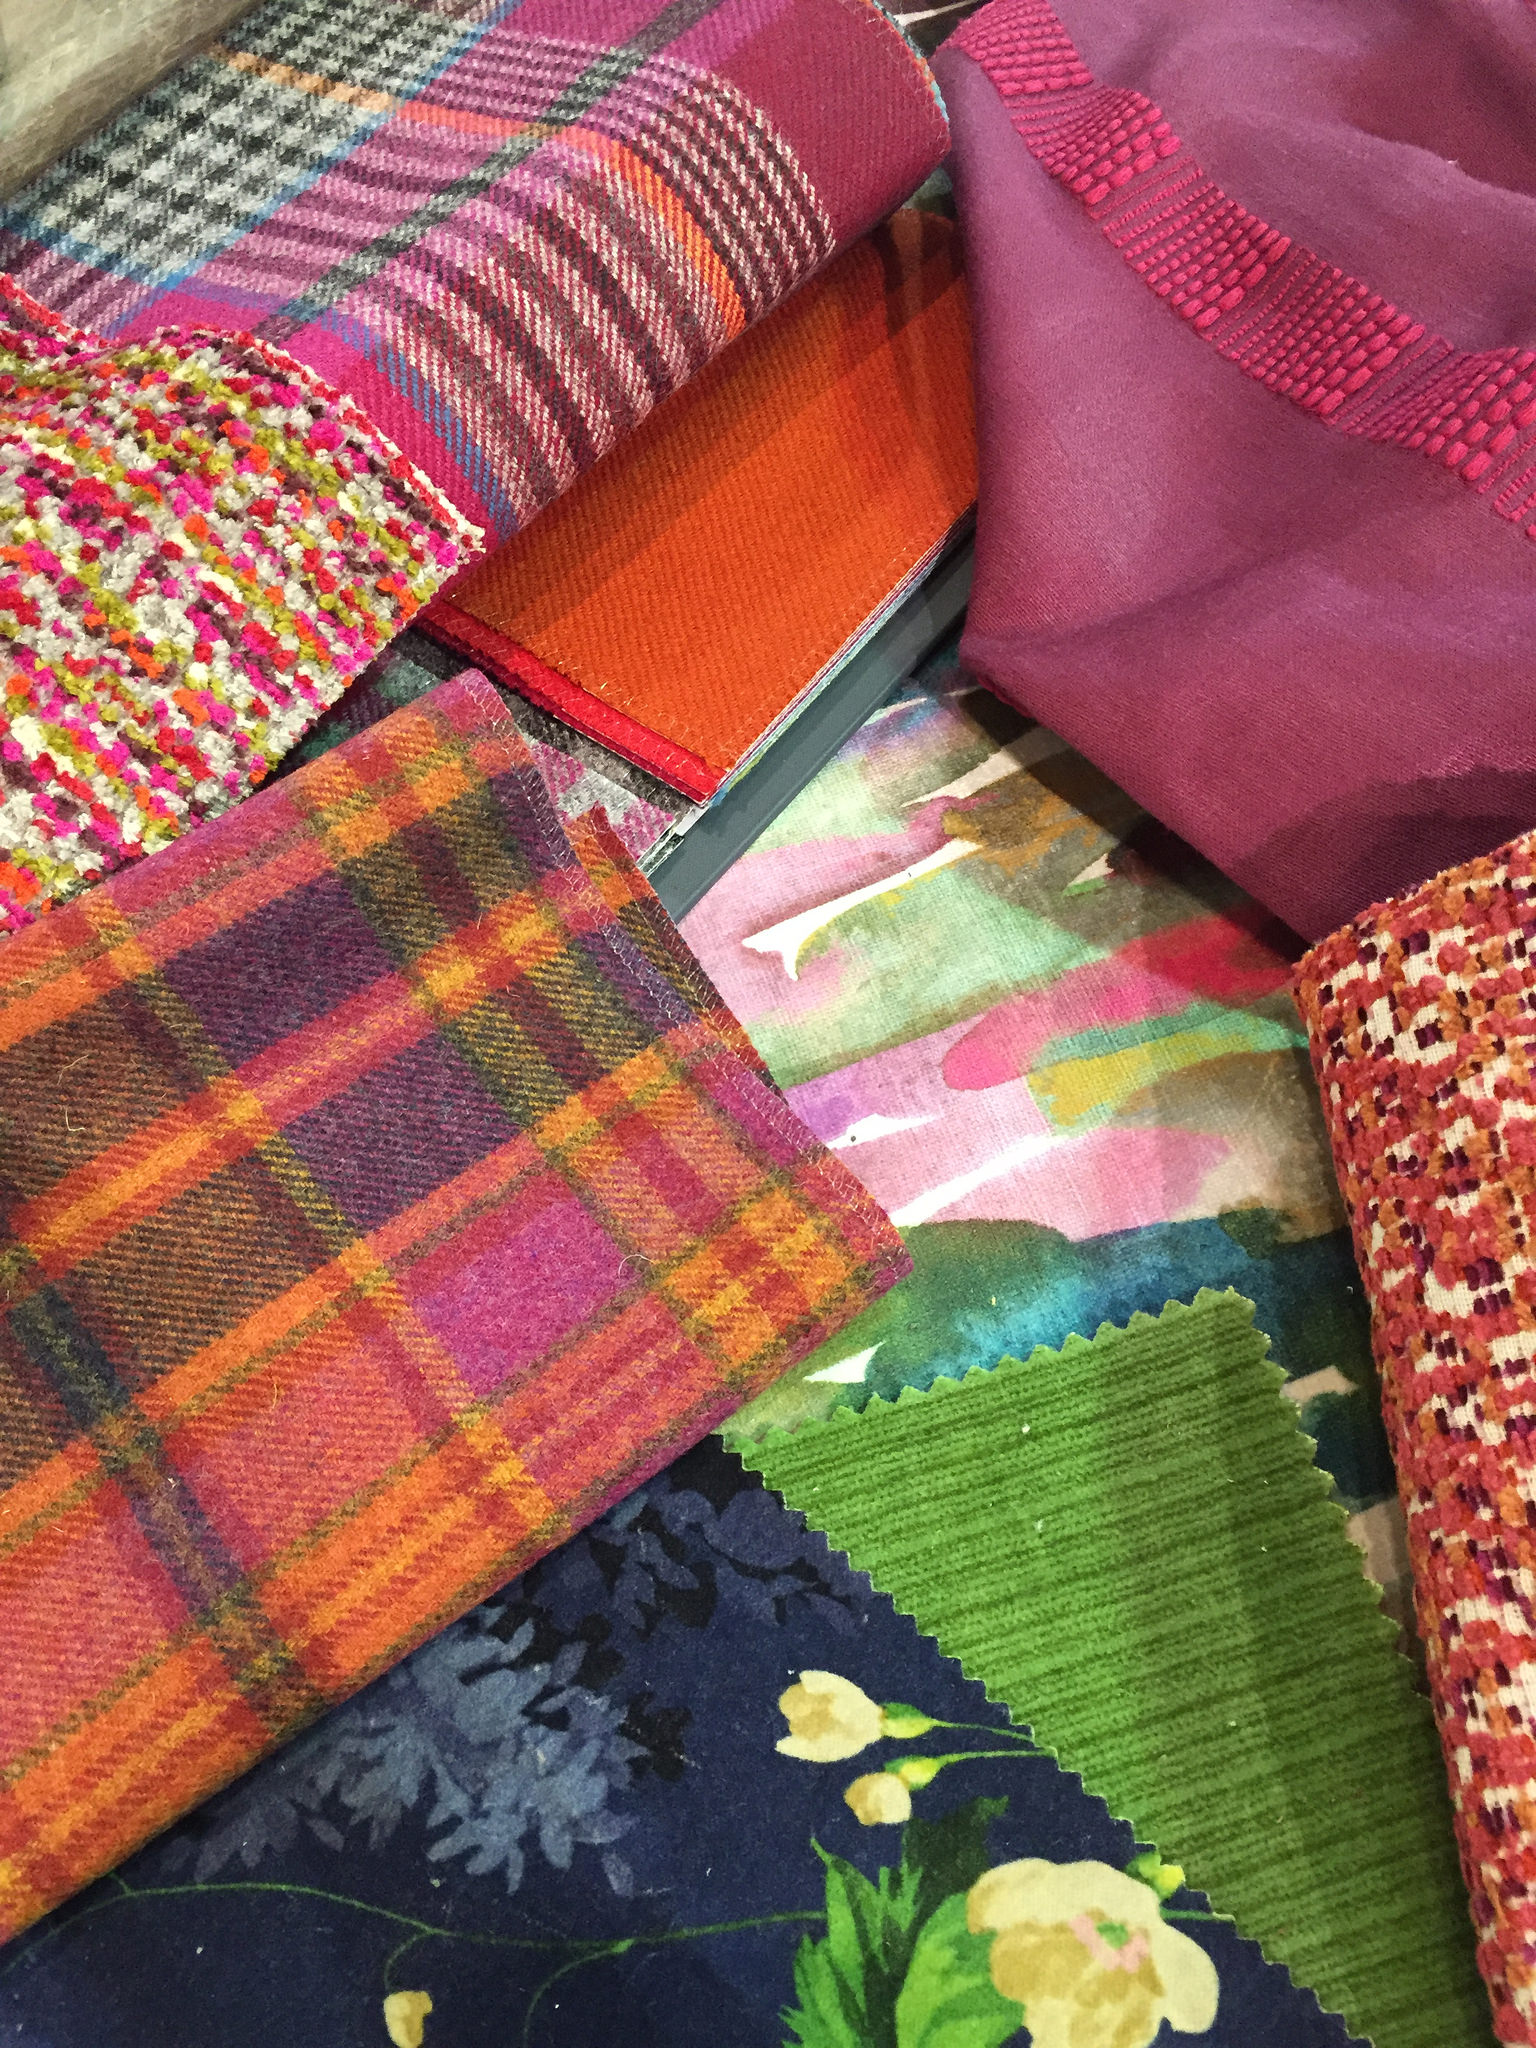 a selection of bright textiles work together to create a stunning palette